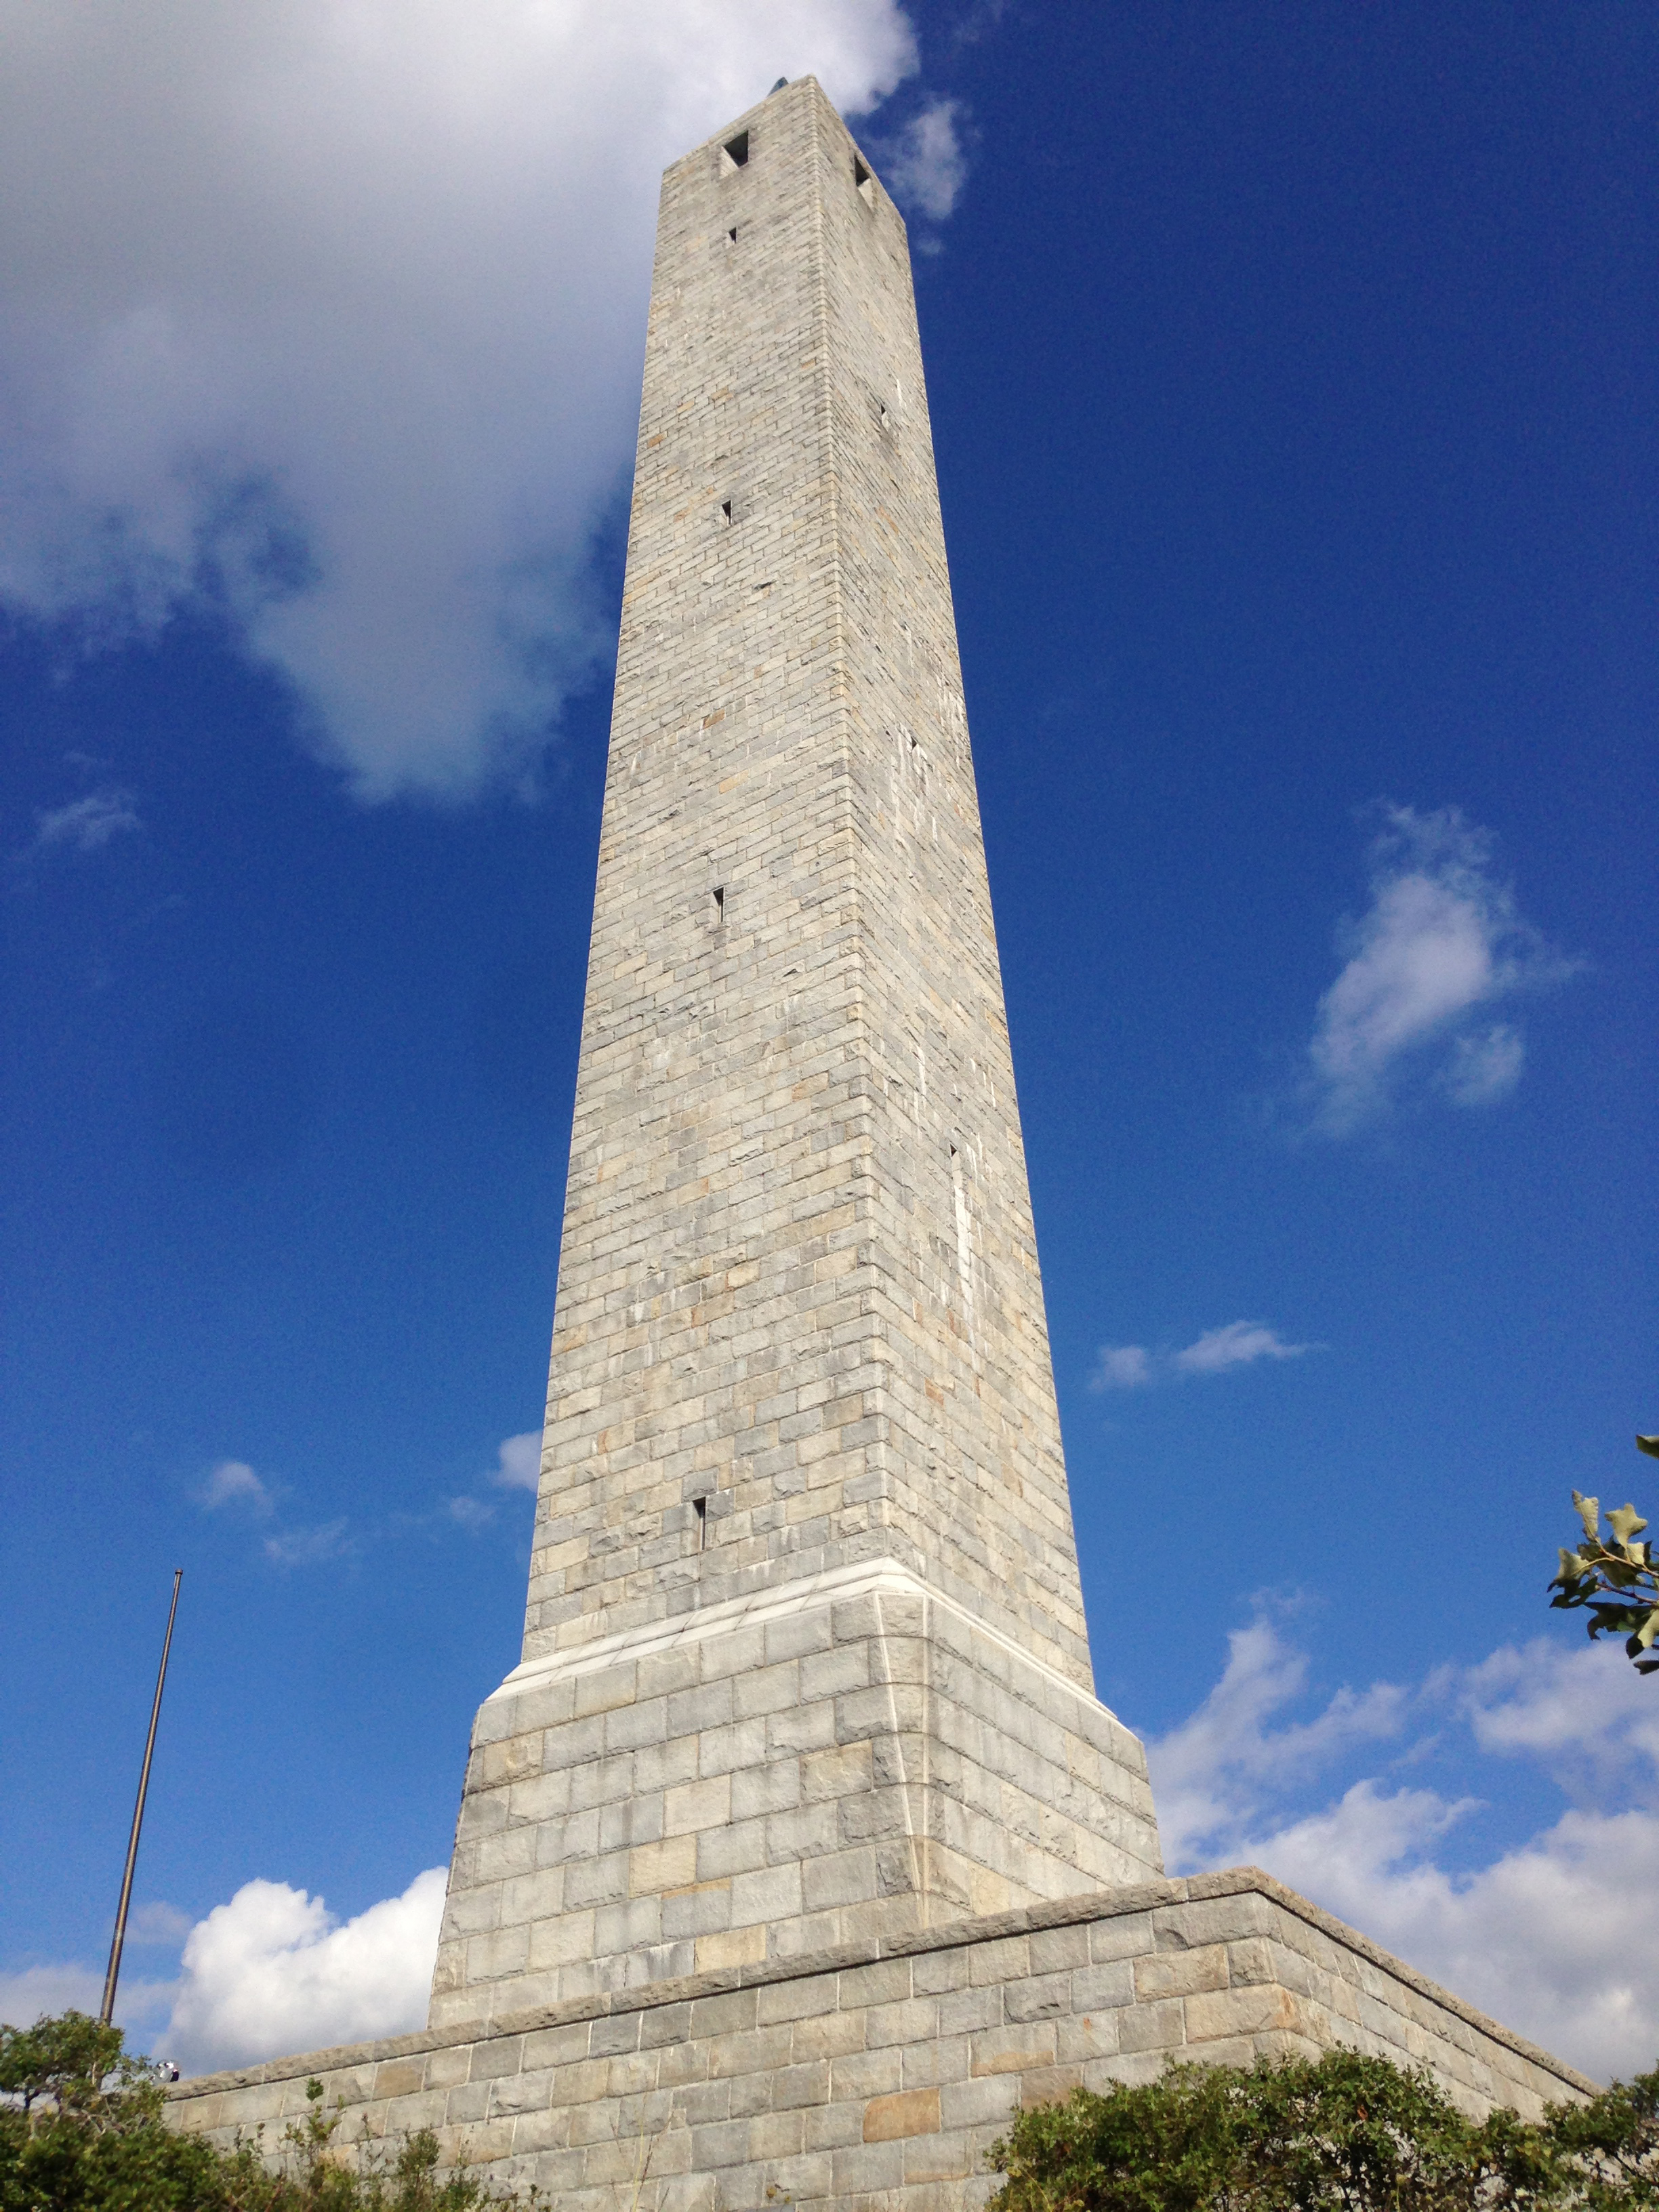 File:2014-08-28 16 25 14 View of High Point Monument from ...